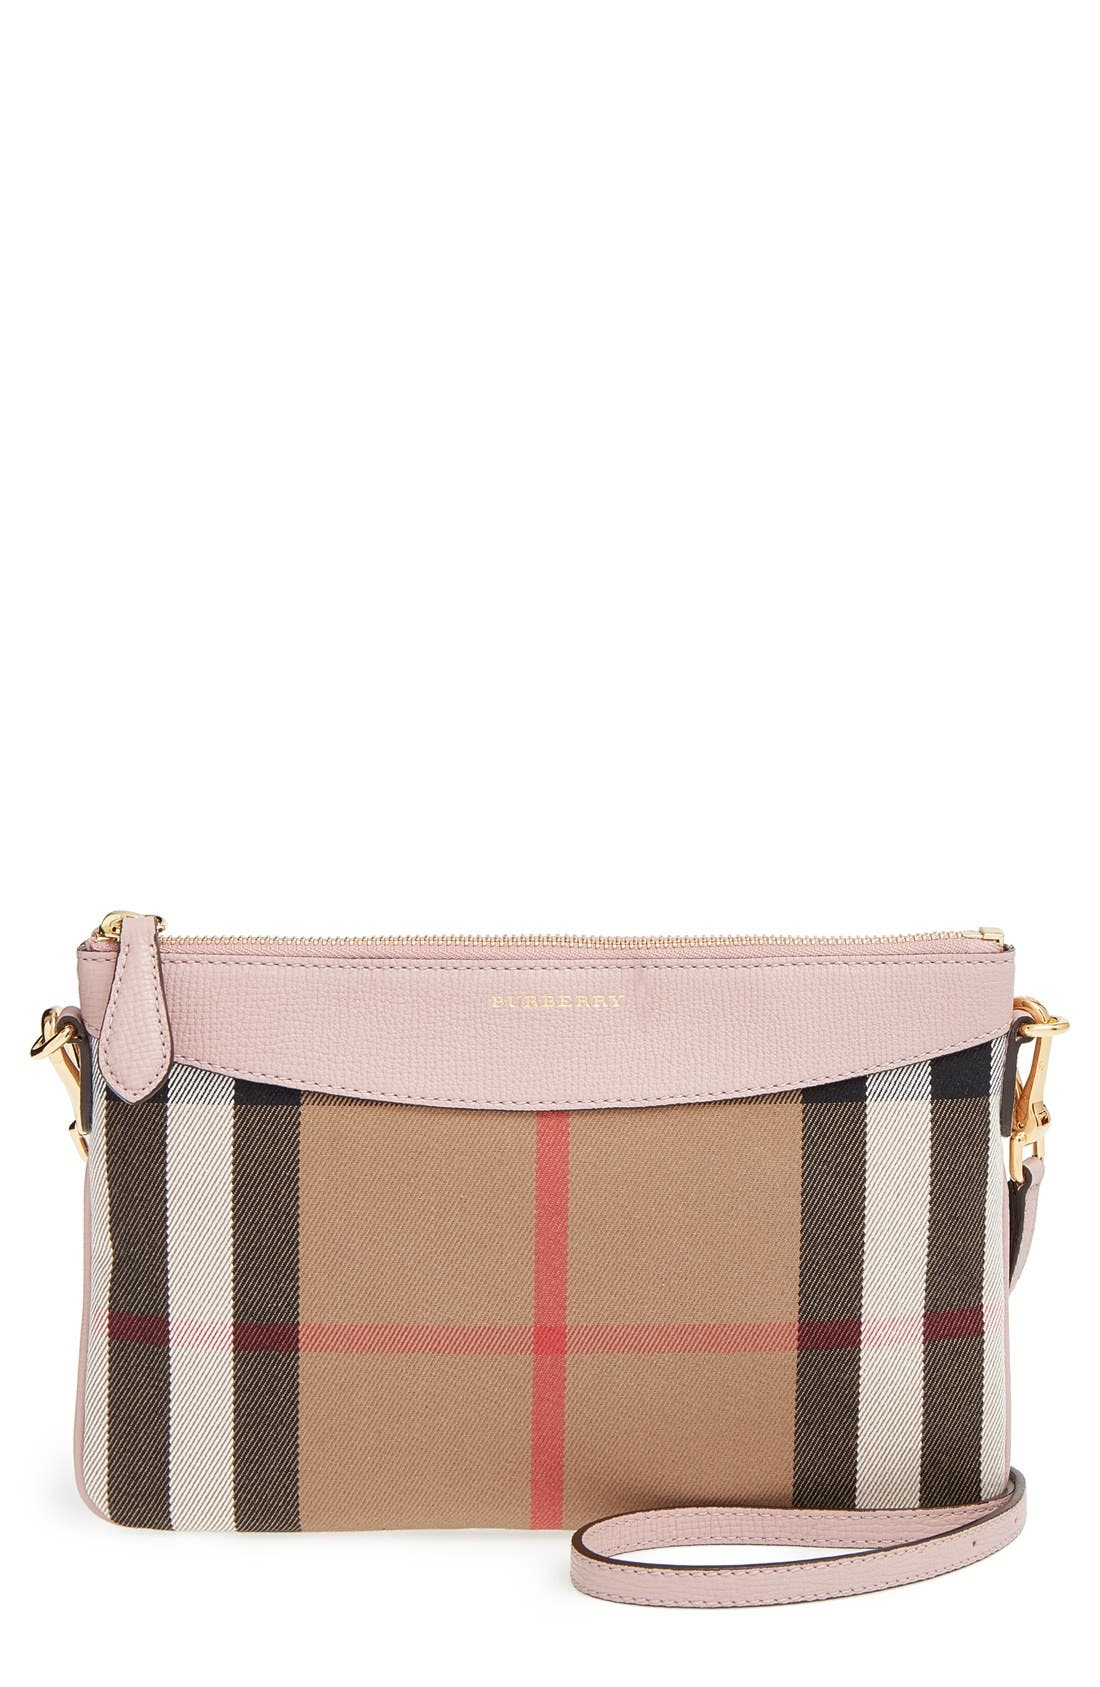 'Peyton - House Check' Crossbody Bag,                             Main thumbnail 1, color,                             500